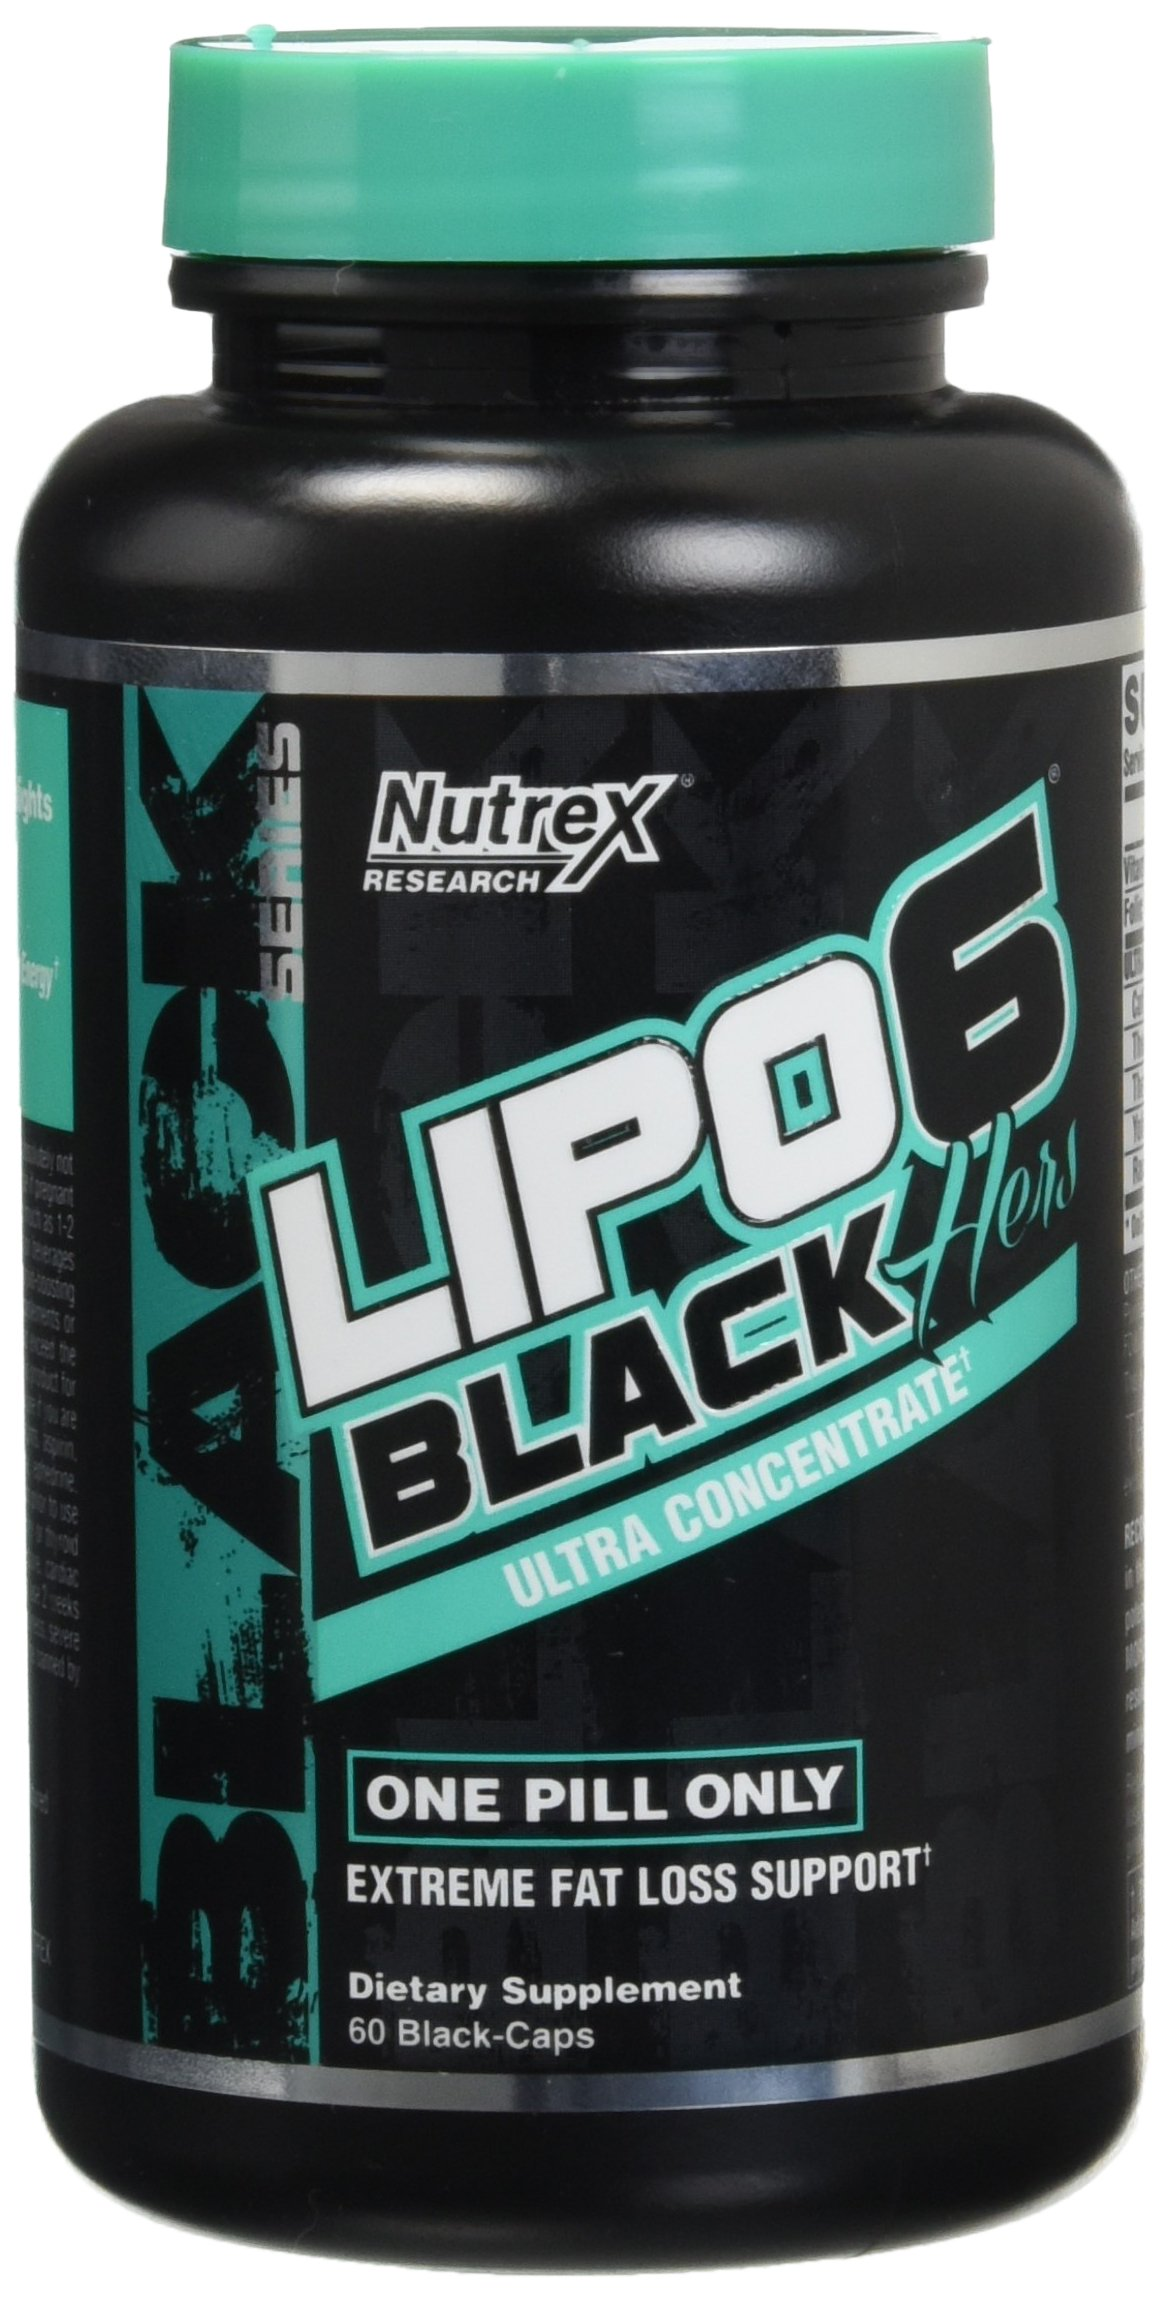 Nutrex Research Lipo 6 Black Hers Ultra Concentrate, 60 Count by Nutrex